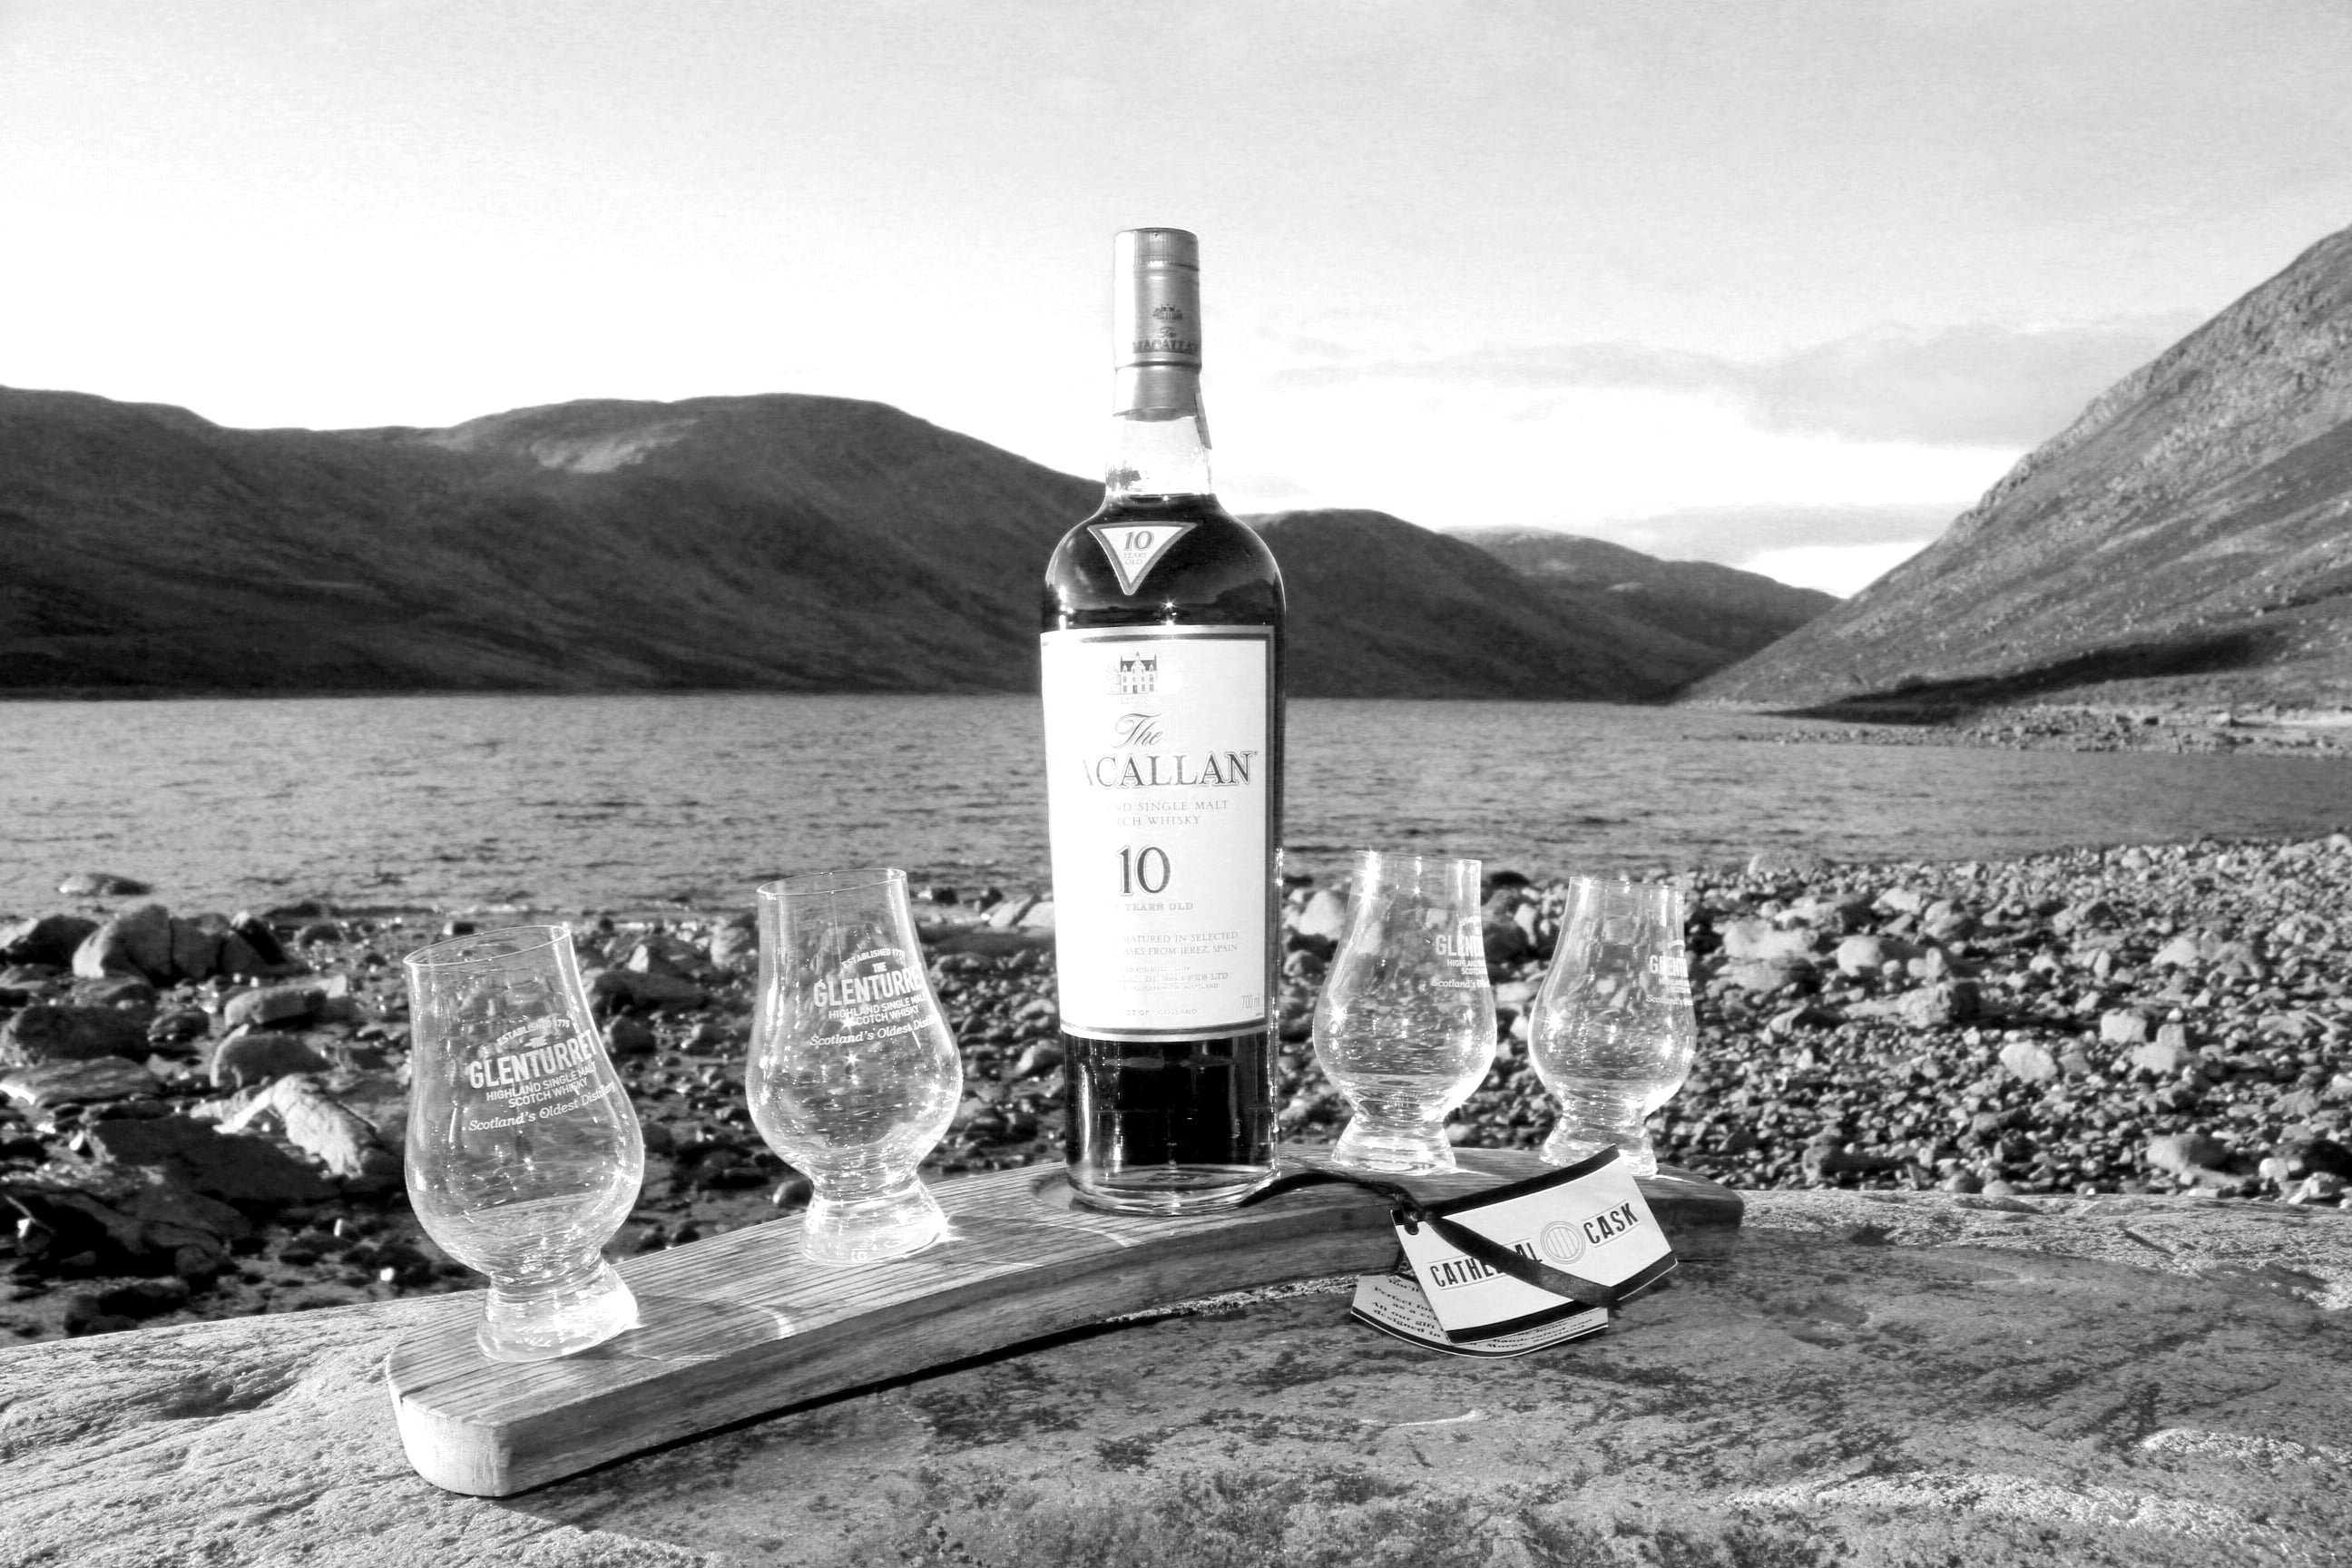 Whisky Gifts Malt Whisky Gifts Scotch Whisky Gifts For Men